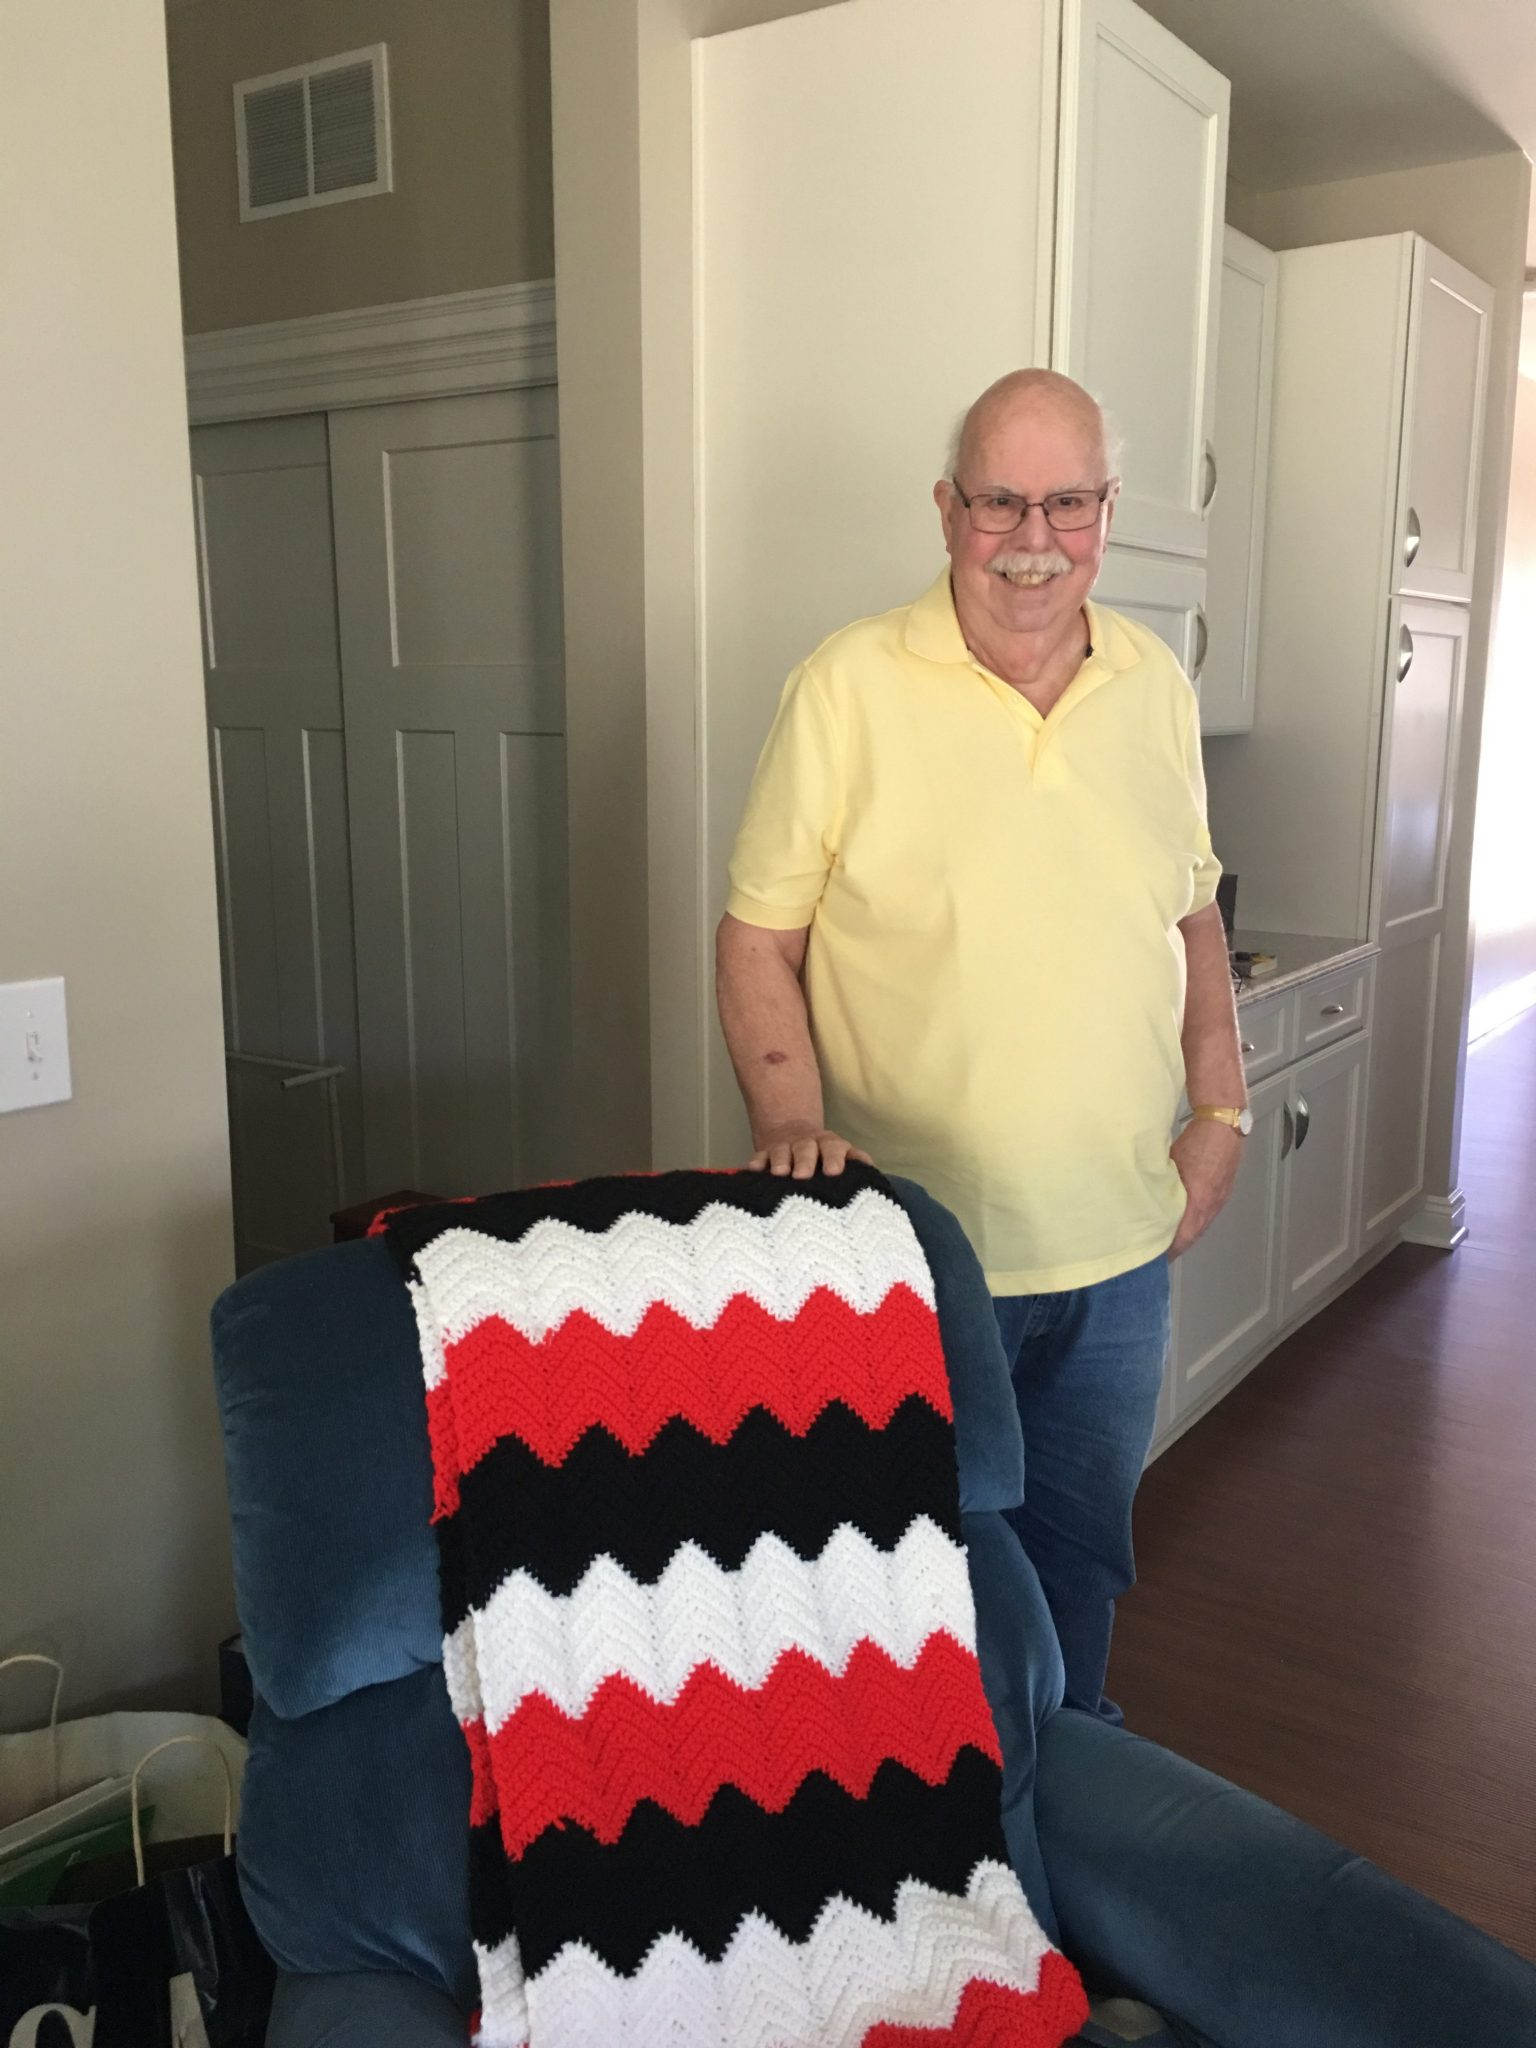 Man Smiling Next to Quilt